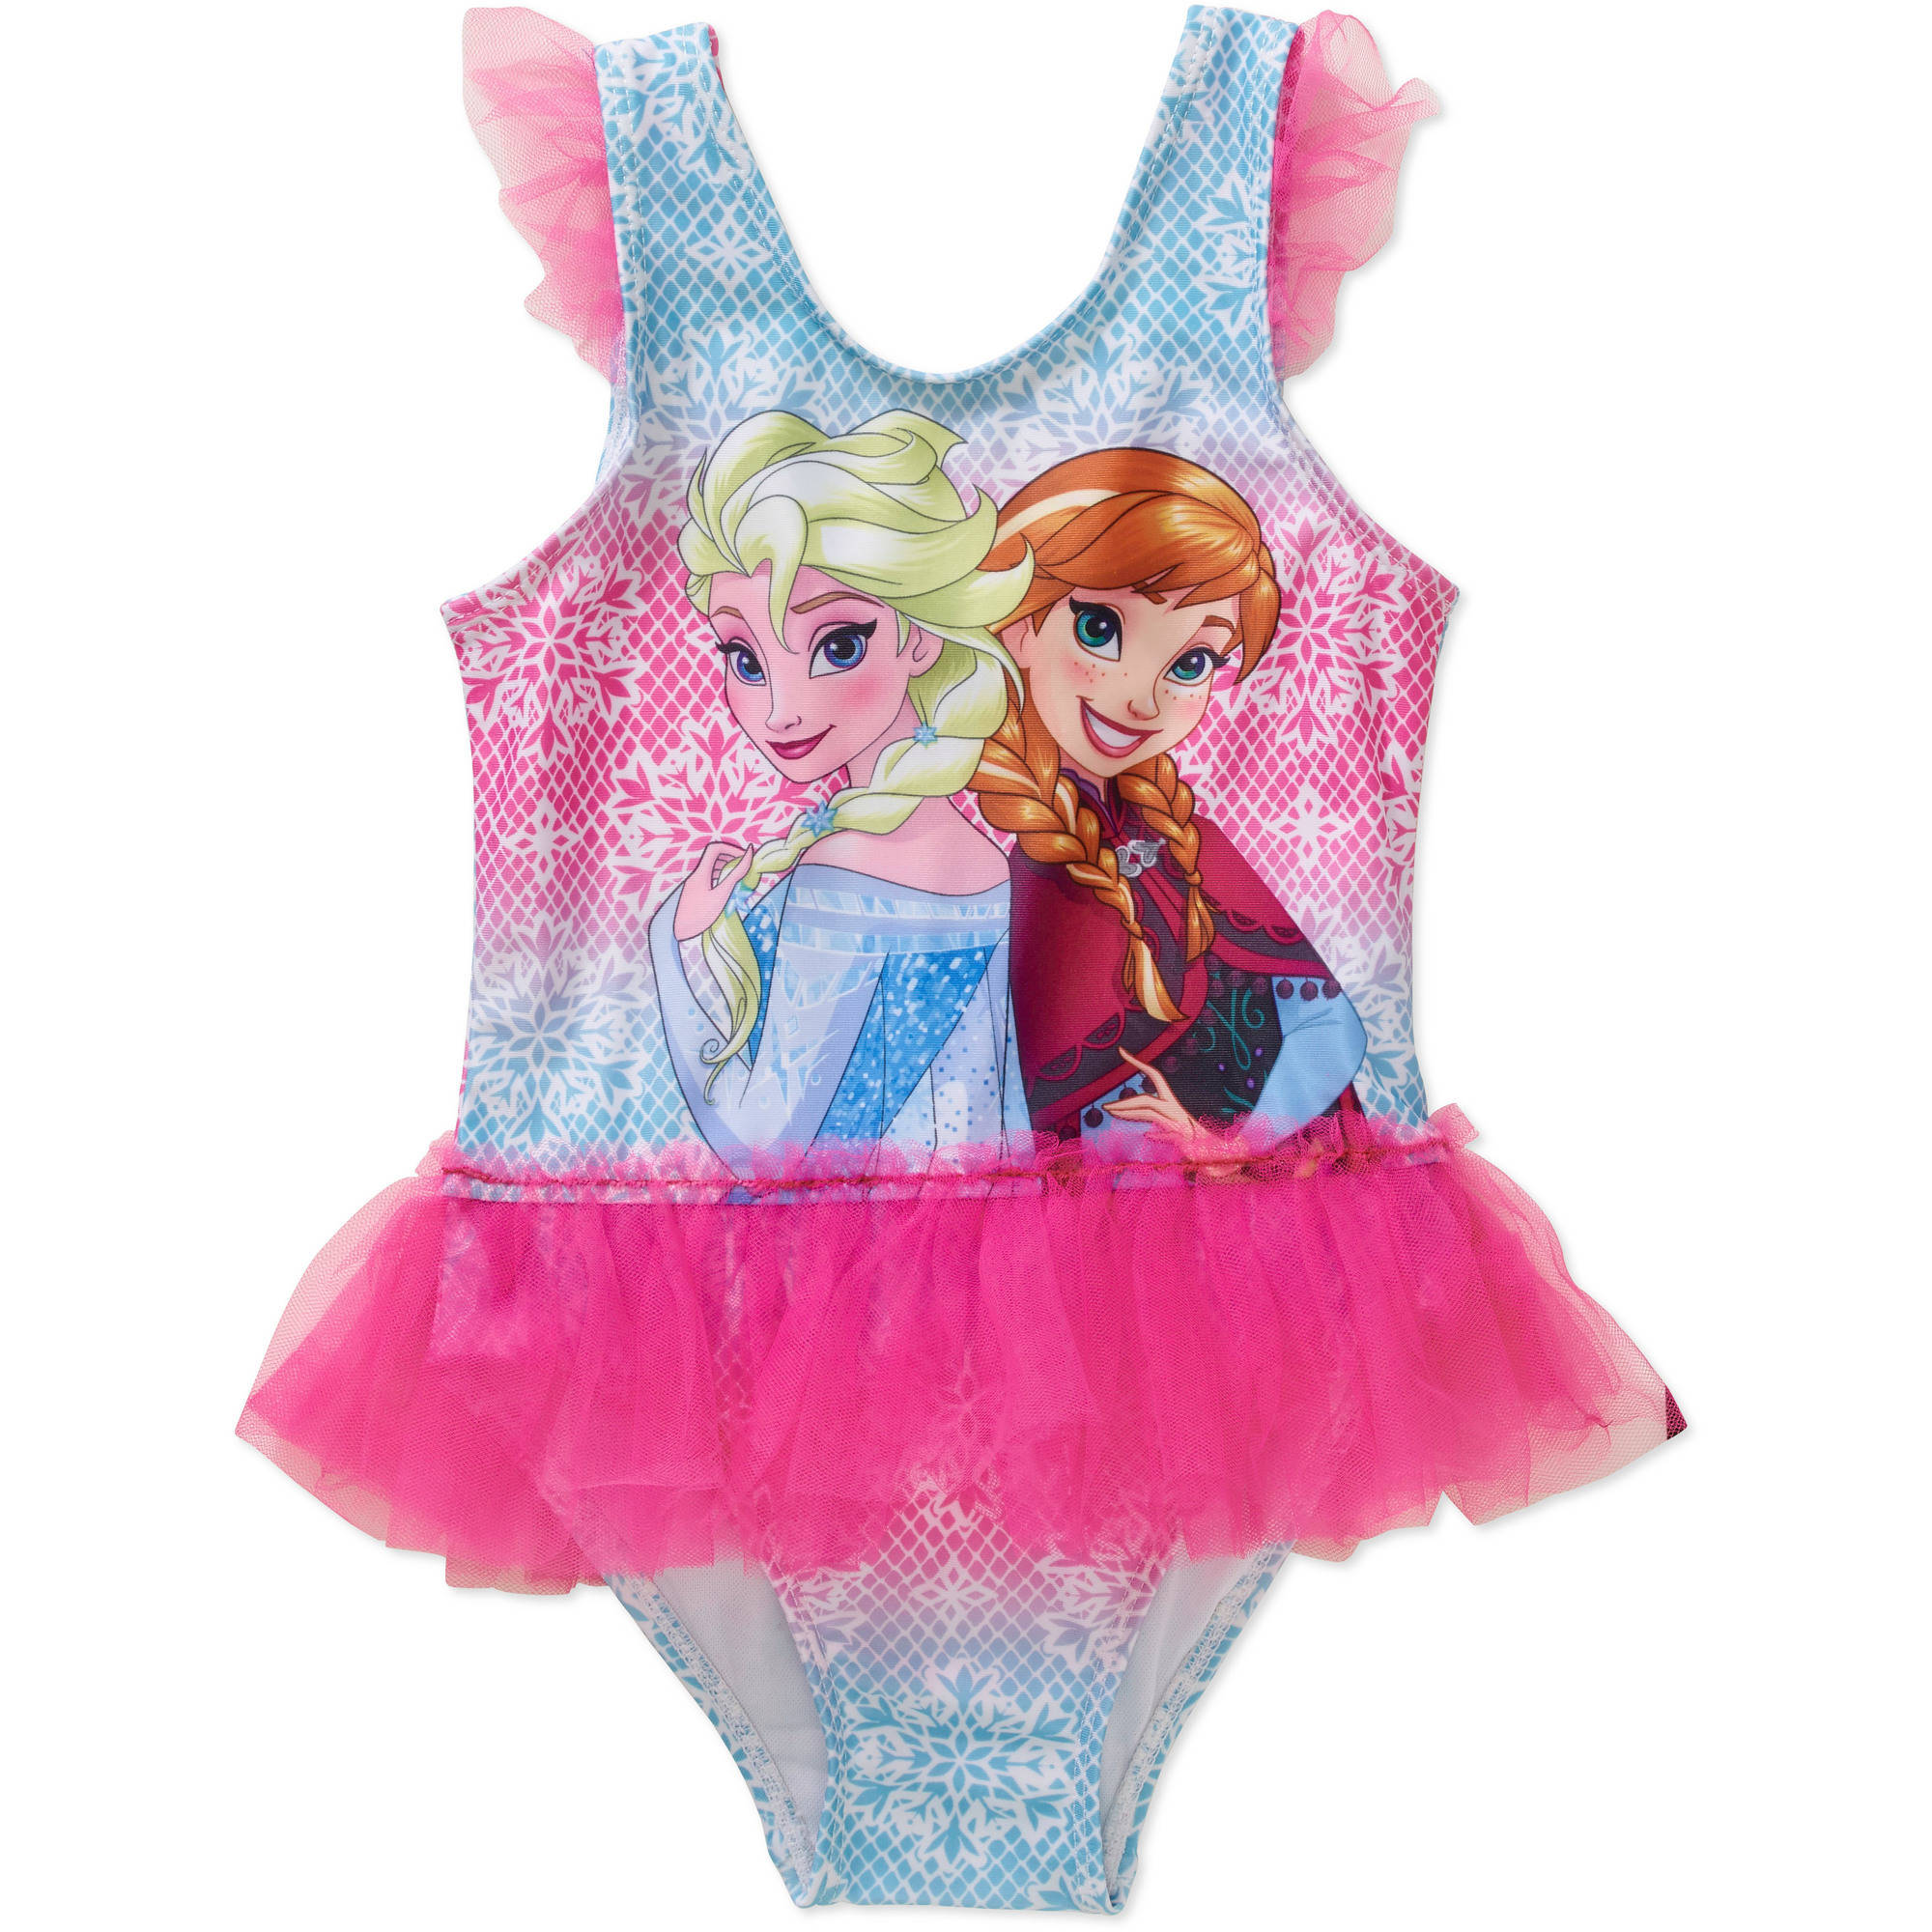 edbb48096 Disney Frozen - Disney Frozen Anna and Elsa Toddler Girl Tutu 1-Piece  Swimsuit - Walmart.com